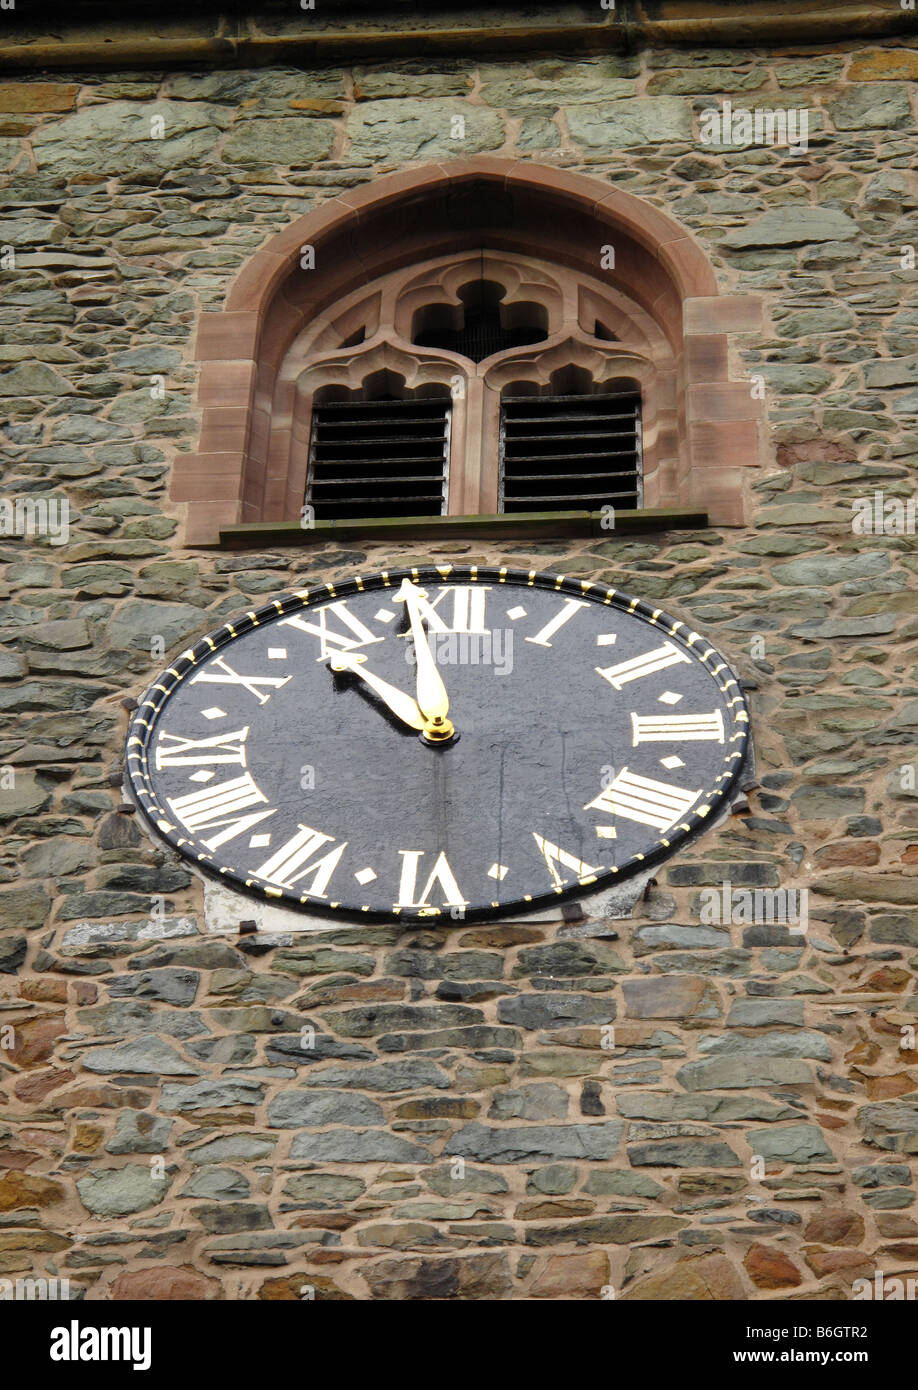 Metal clock face showing 10.59 with roman numerals on stone church clock tower with louvered stone mullion window - Stock Image